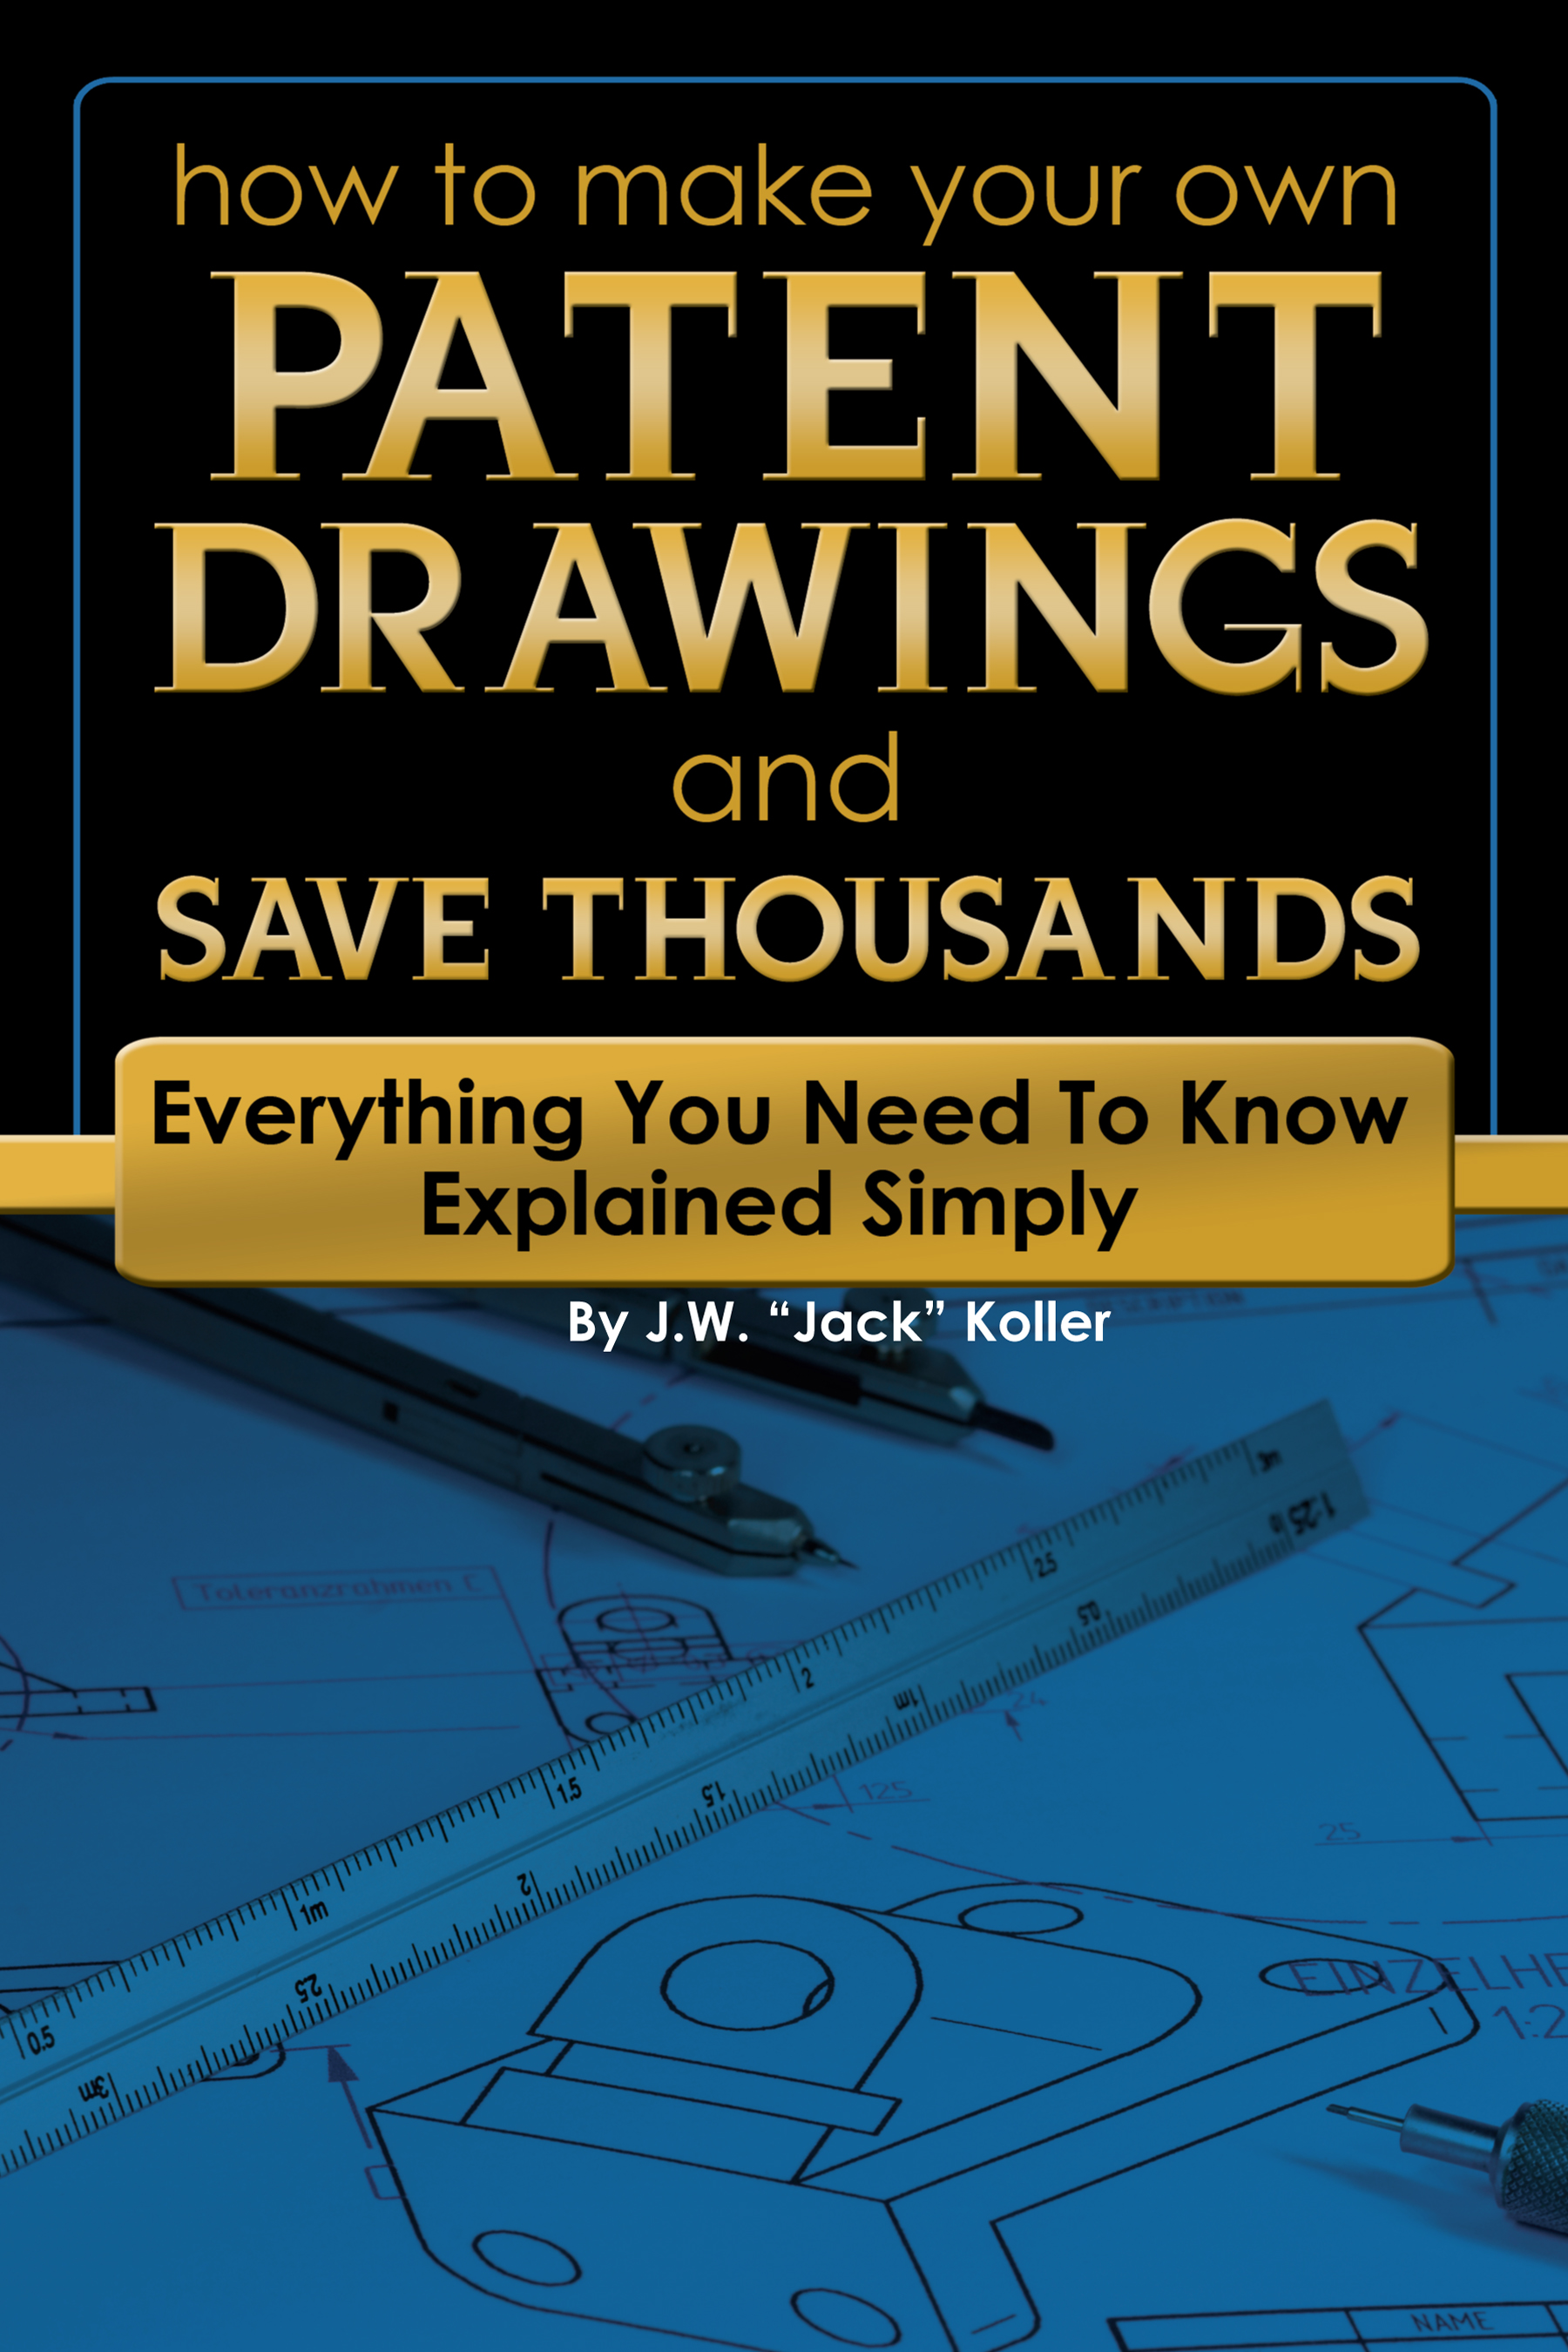 How to Make Your Own Patent Drawings and Save Thousands Everything You Need to Know Explained Simply